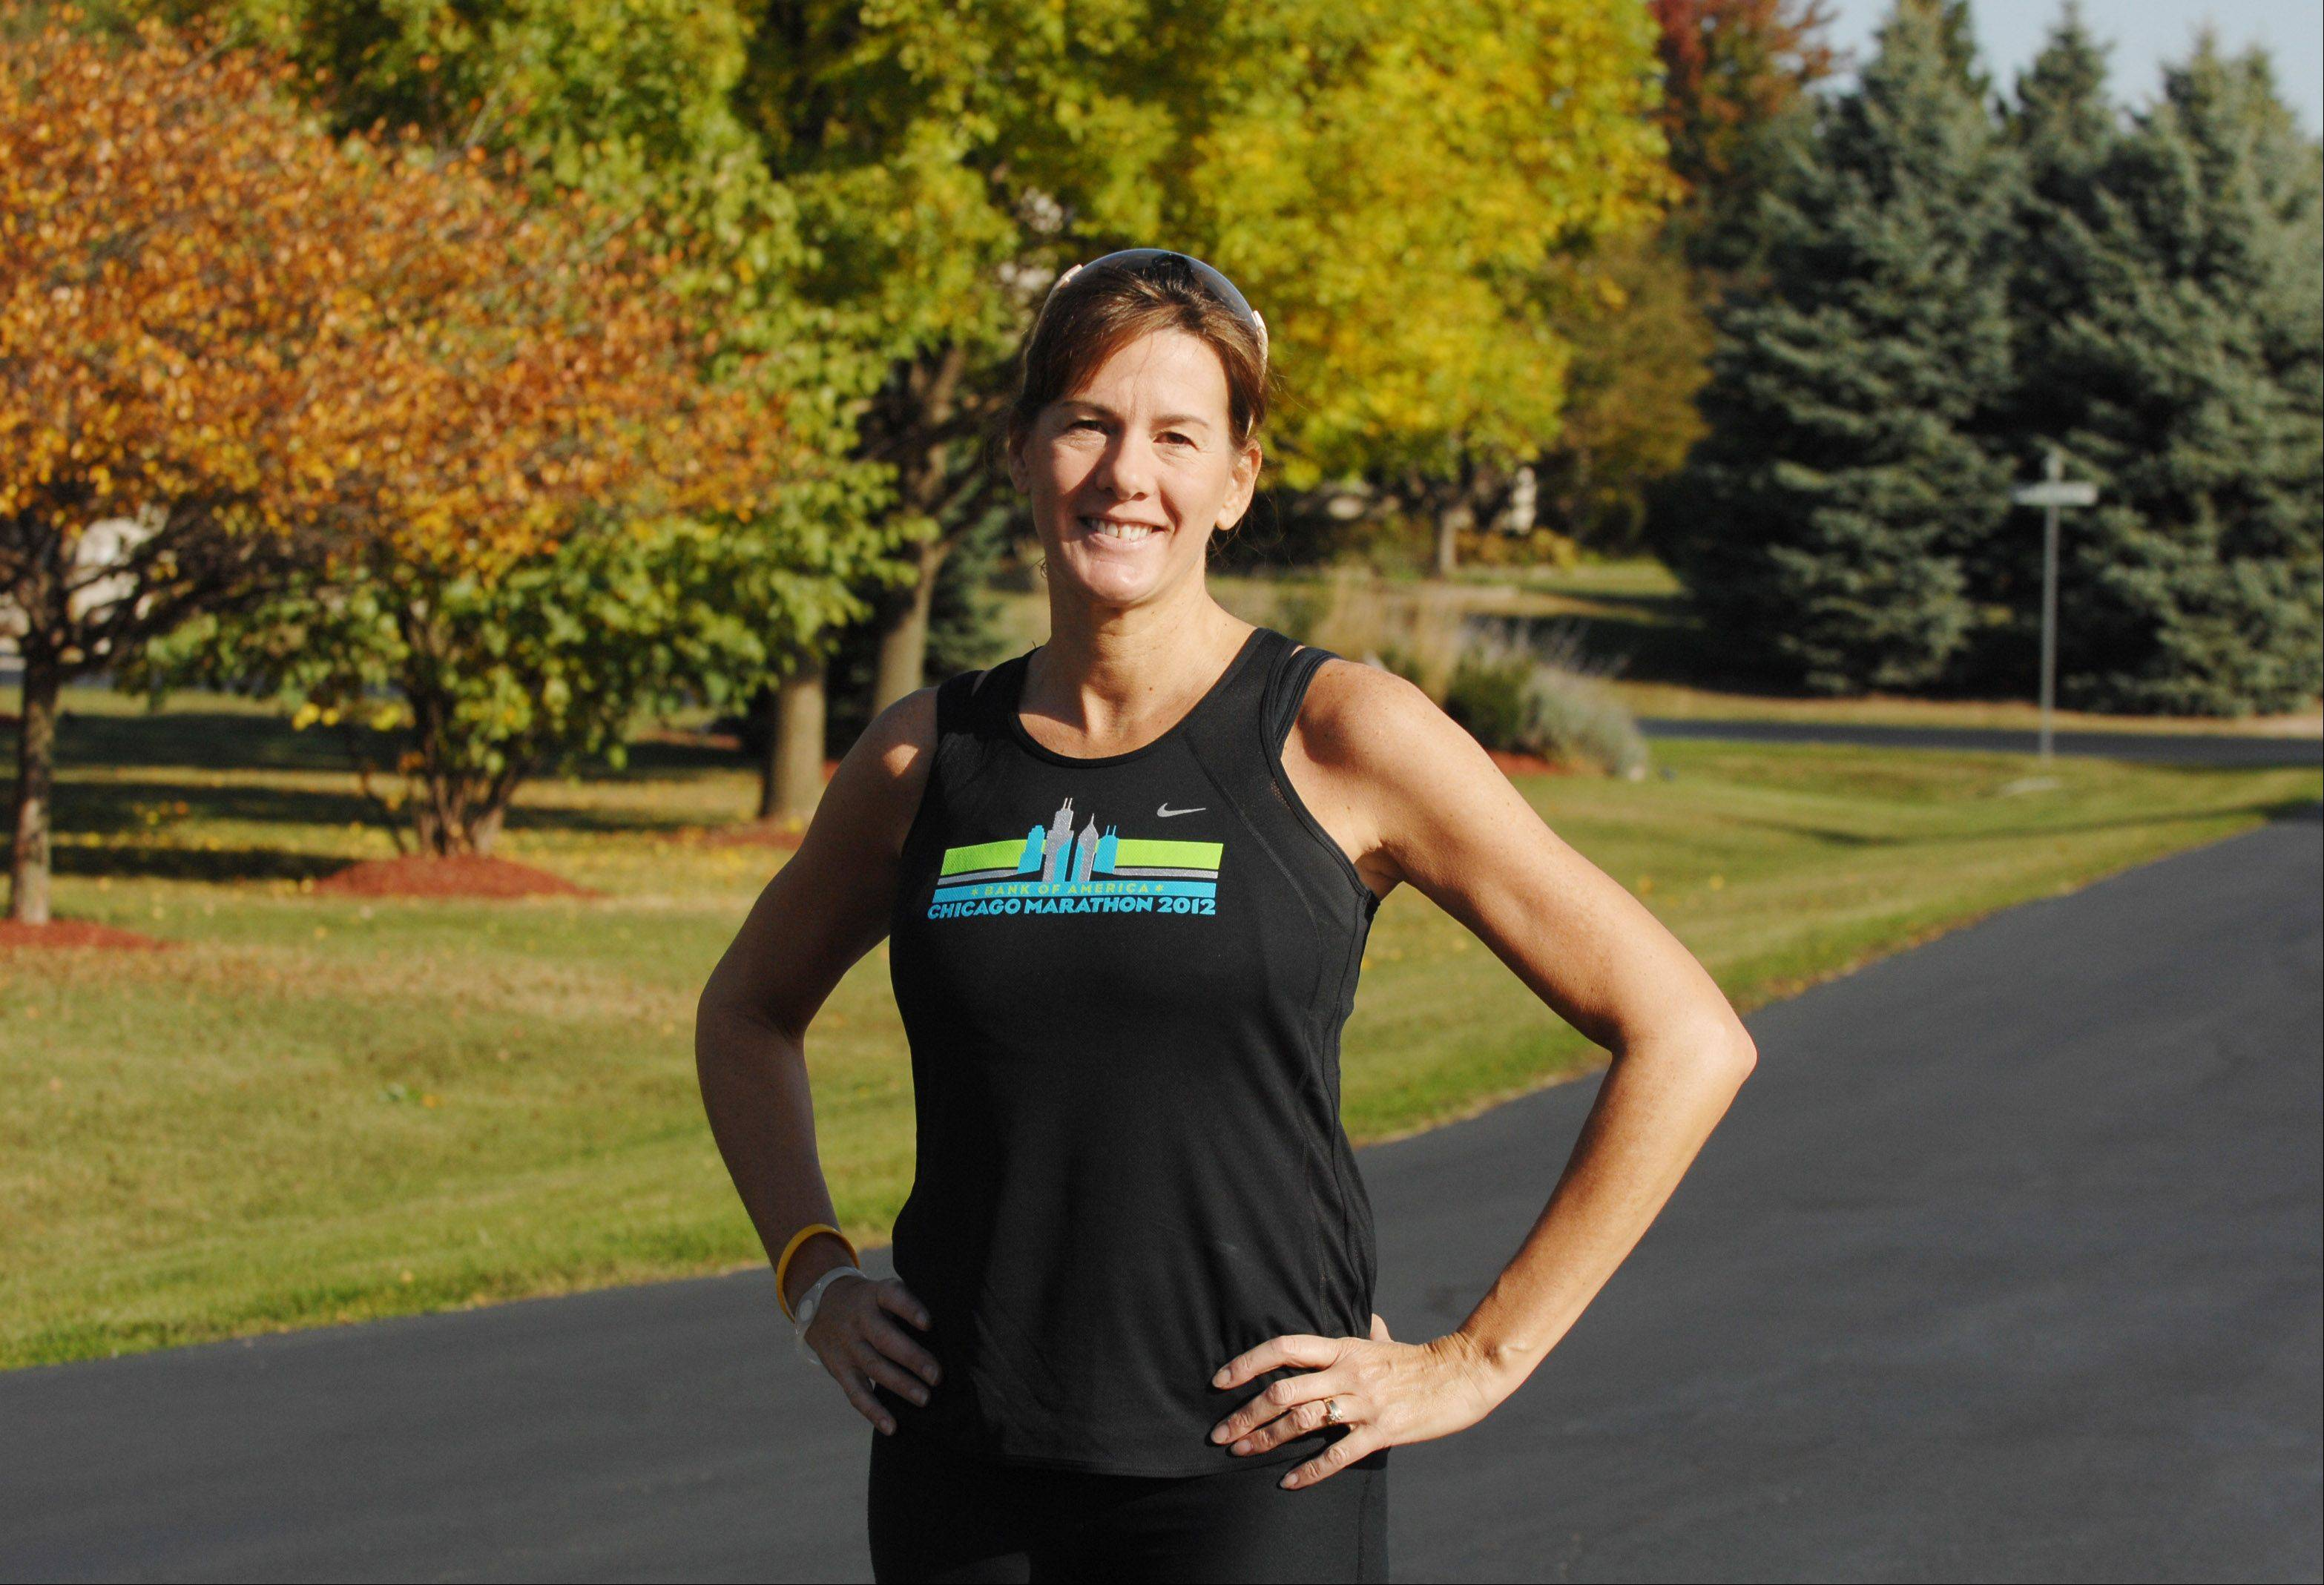 Ginna Podge of Wayne became a marathon runner after she was diagnosed with cancer 10 years ago. She will compete in the Chicago Ultra 50K Oct. 27.